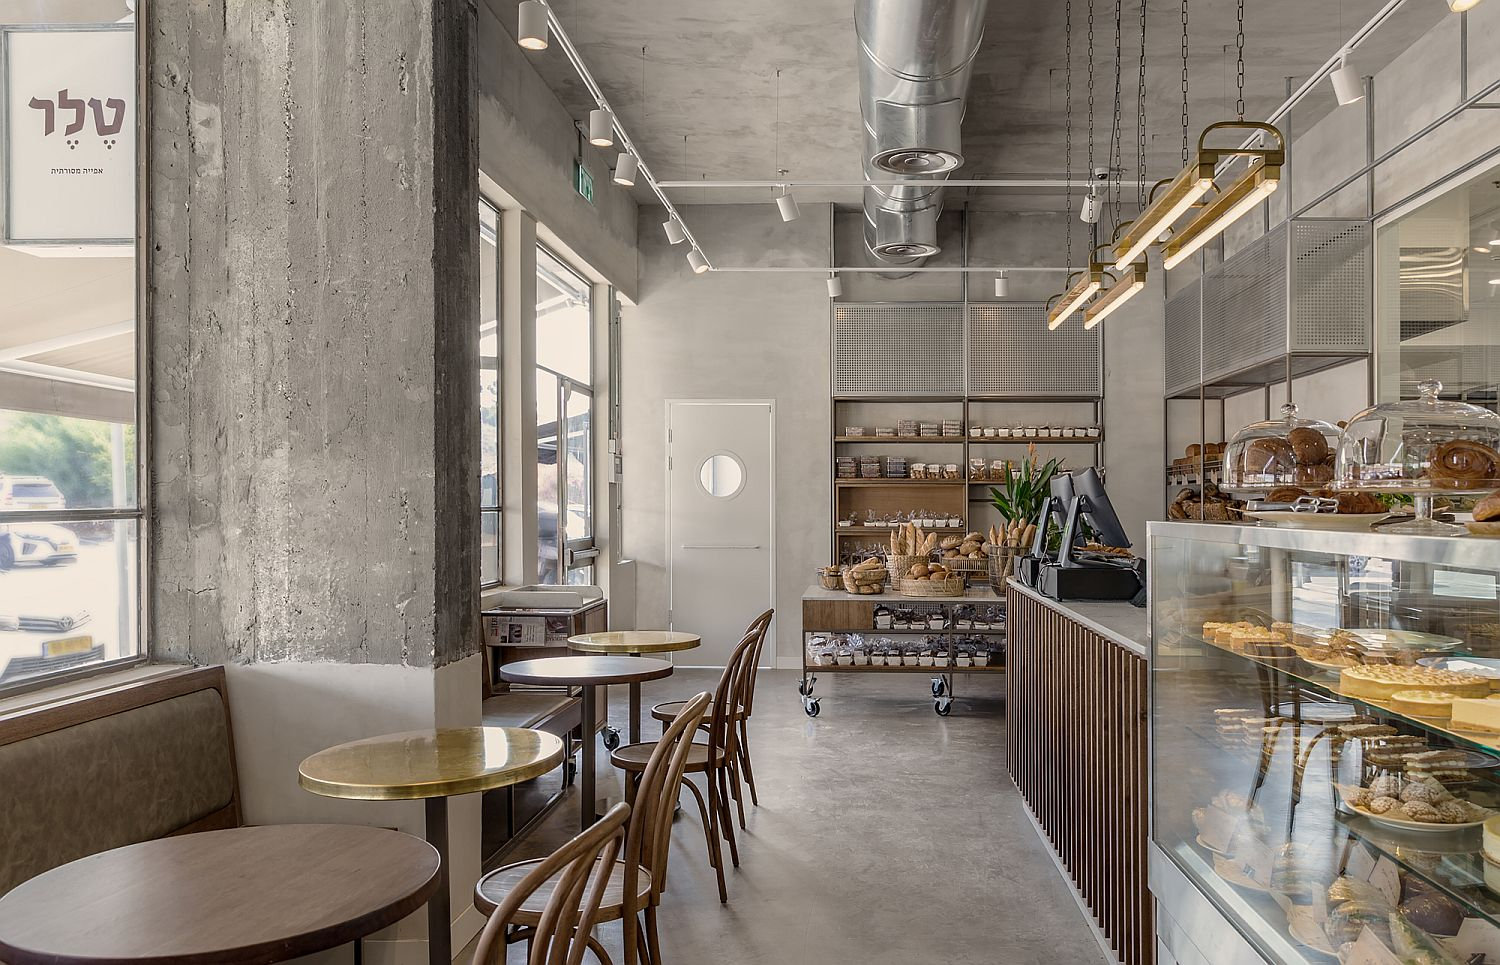 Concrete-and-exposed-duct-pipes-give-the-interior-a-distinct-industrial-appeal